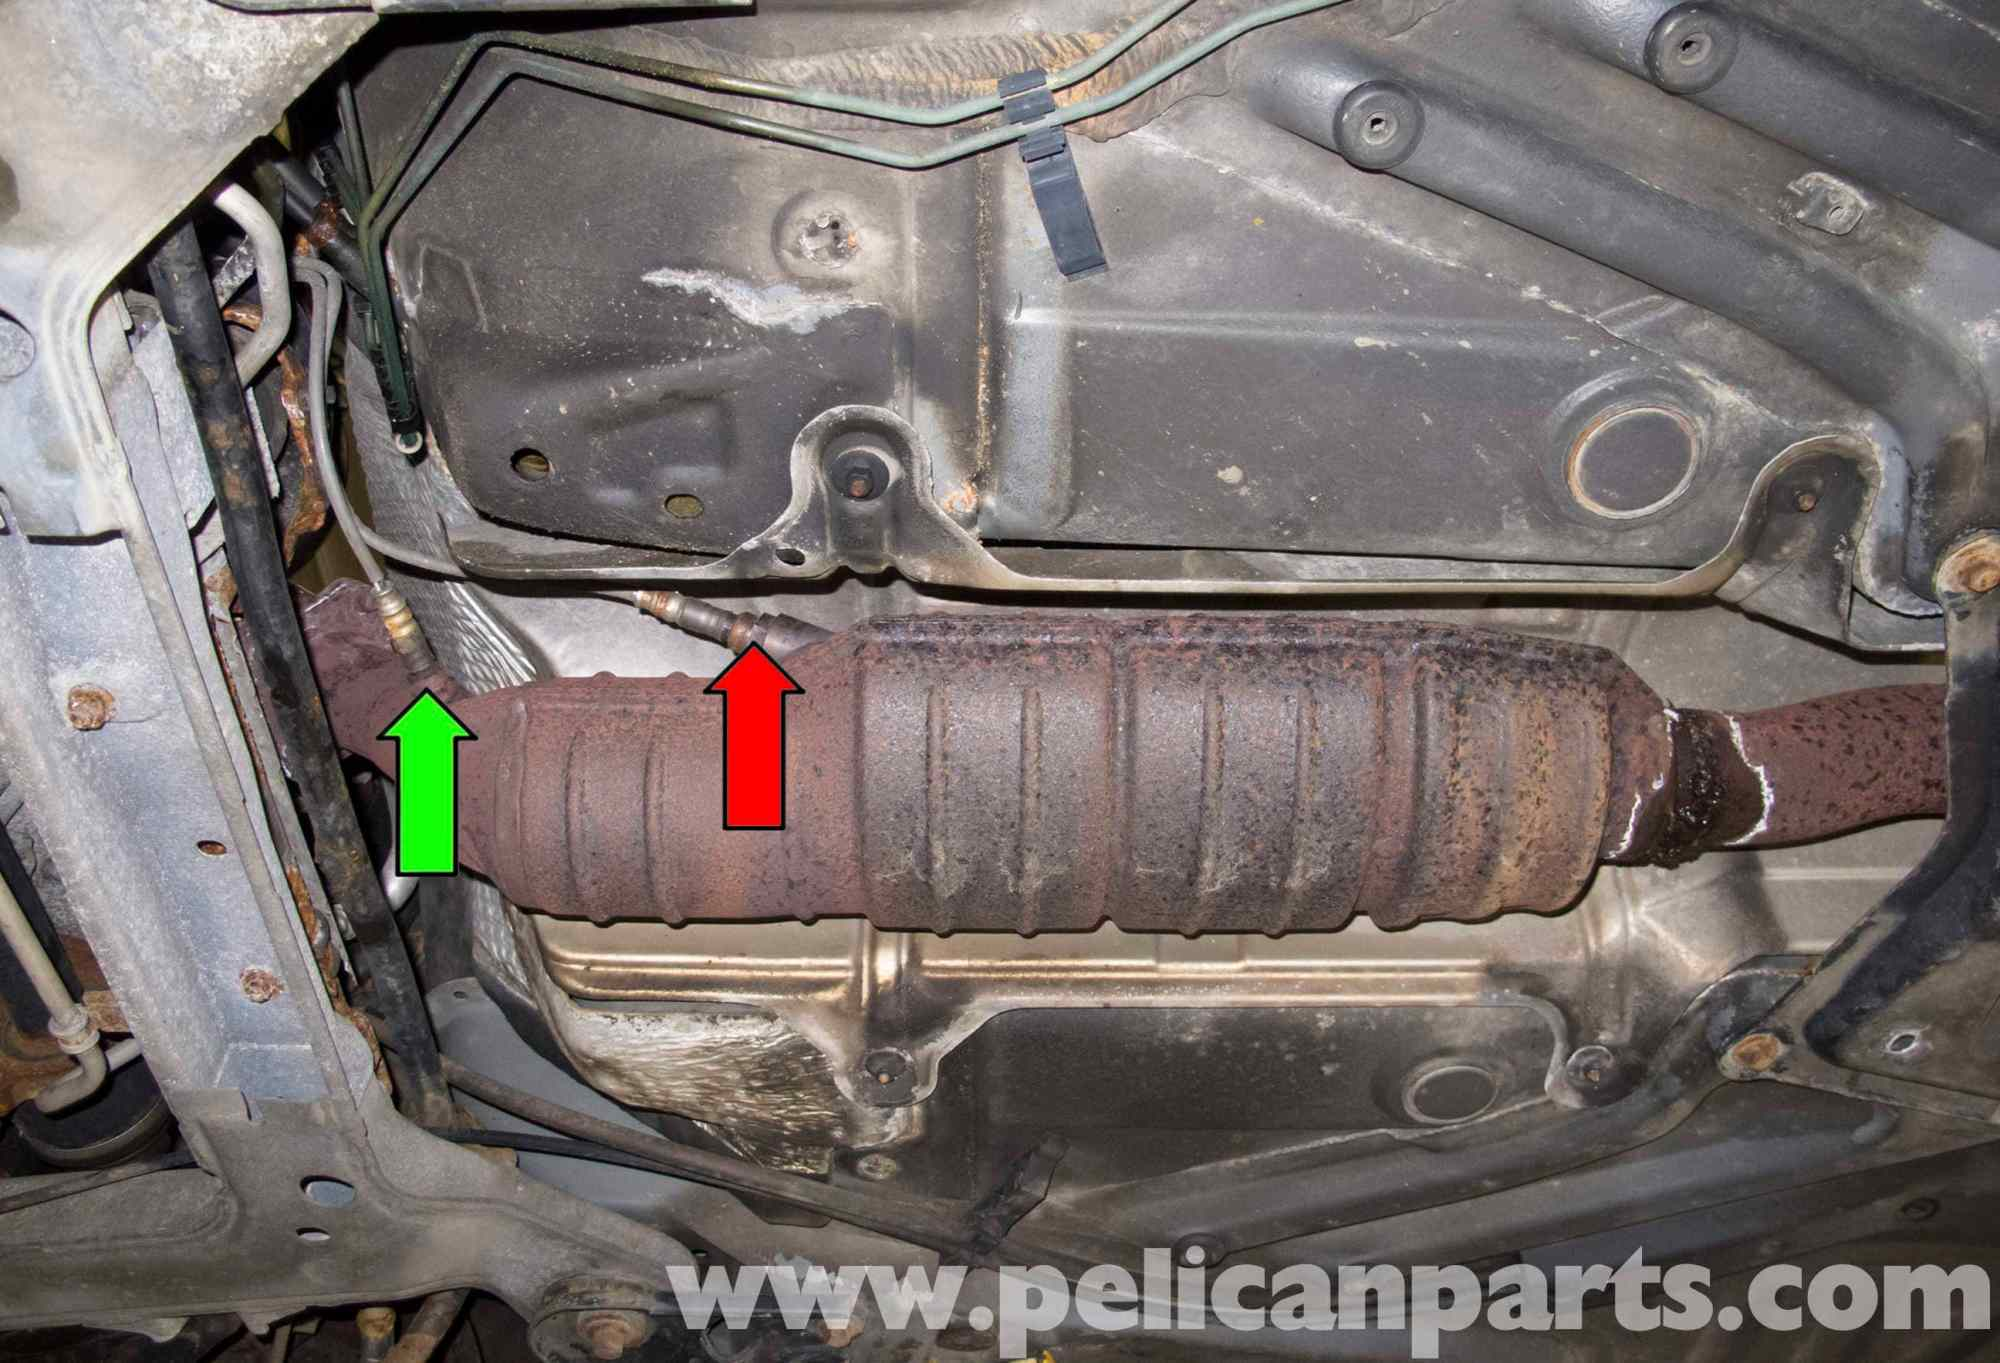 hight resolution of volvo v70 oxygen sensor replacement normally aspirated engine wiring diagram volvo v70 2006 along with volvo oxygen sensor location